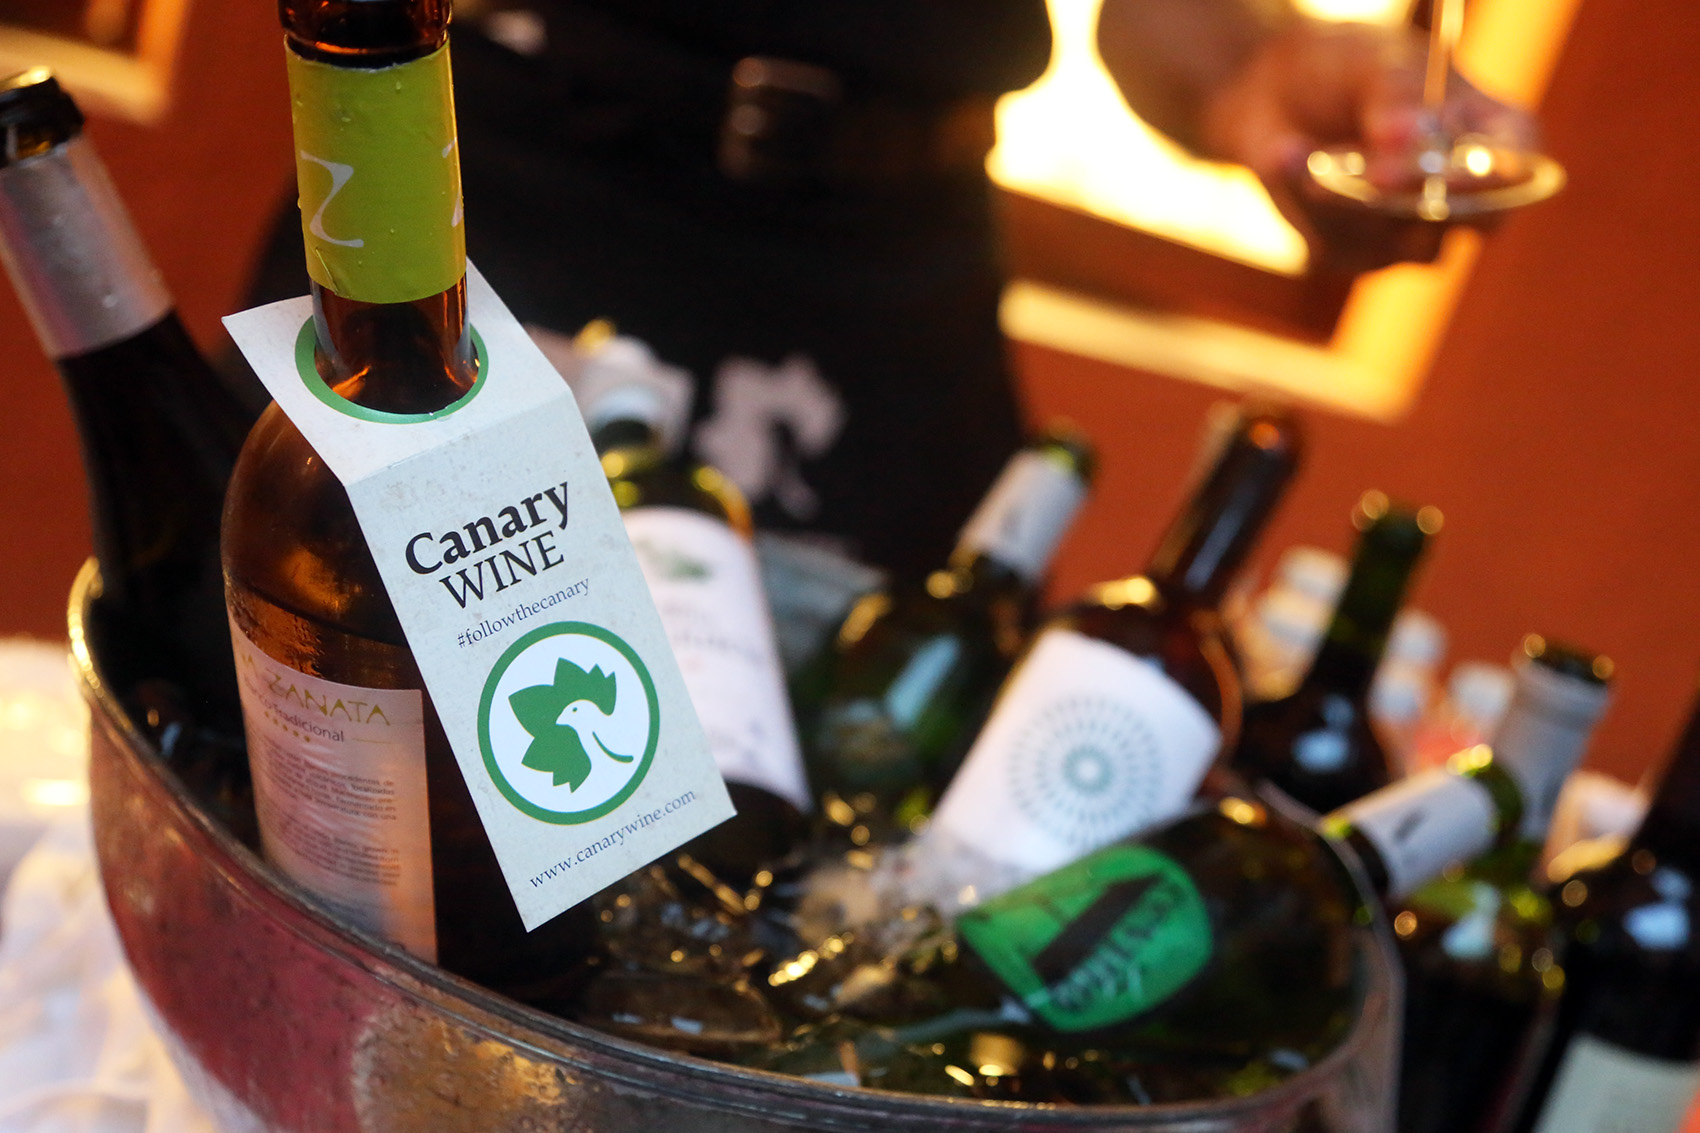 Canary Wine bate récord